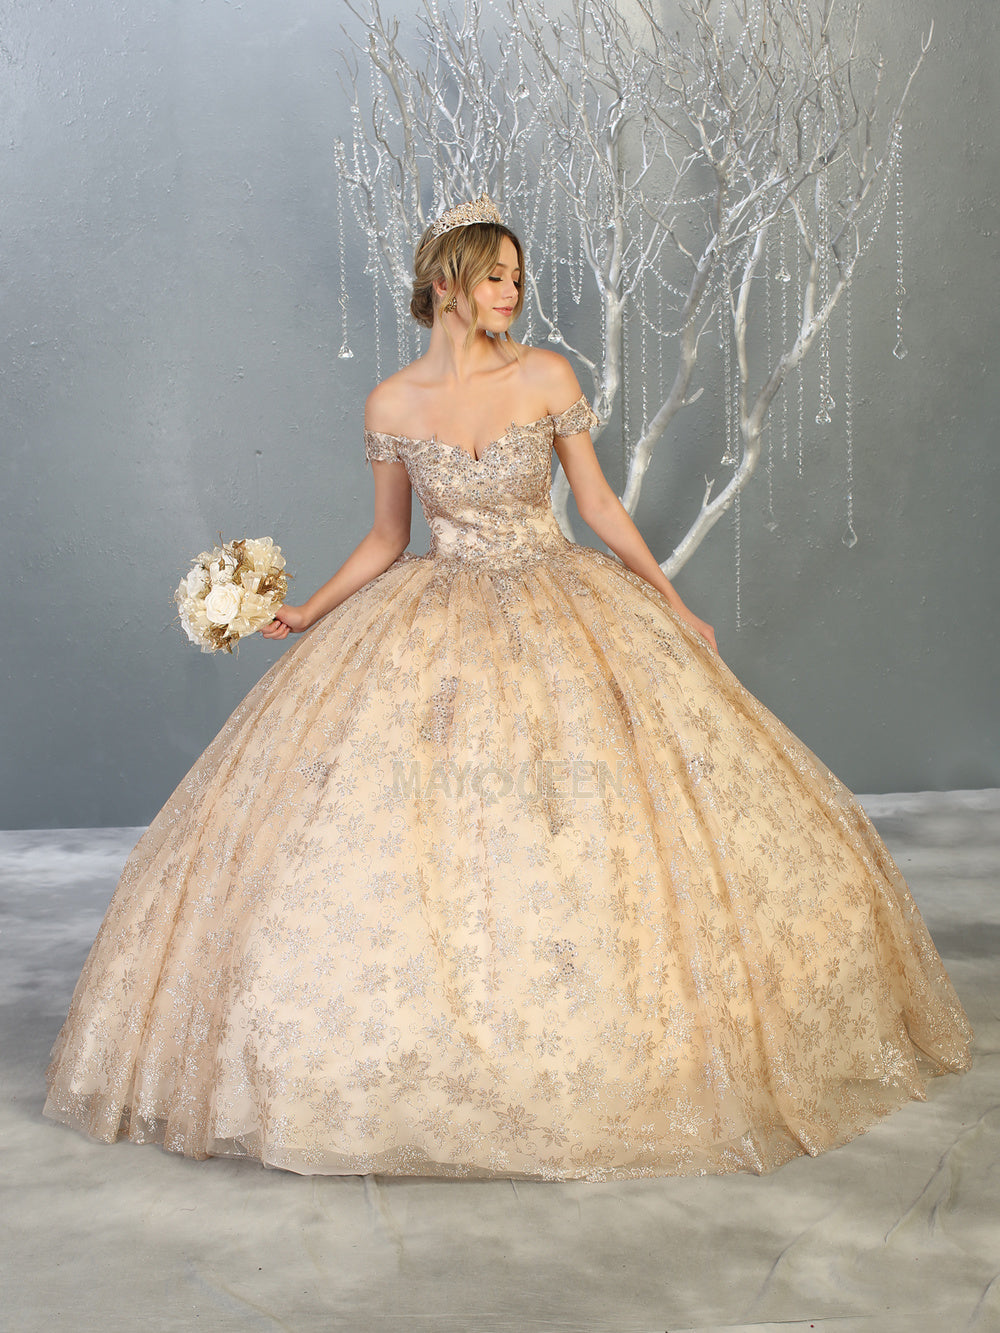 MQ LK152 - Off the Shoulder Quinceanera Gown with Floral Applique Bodice & Glitter Print Skirt - Diggz Prom